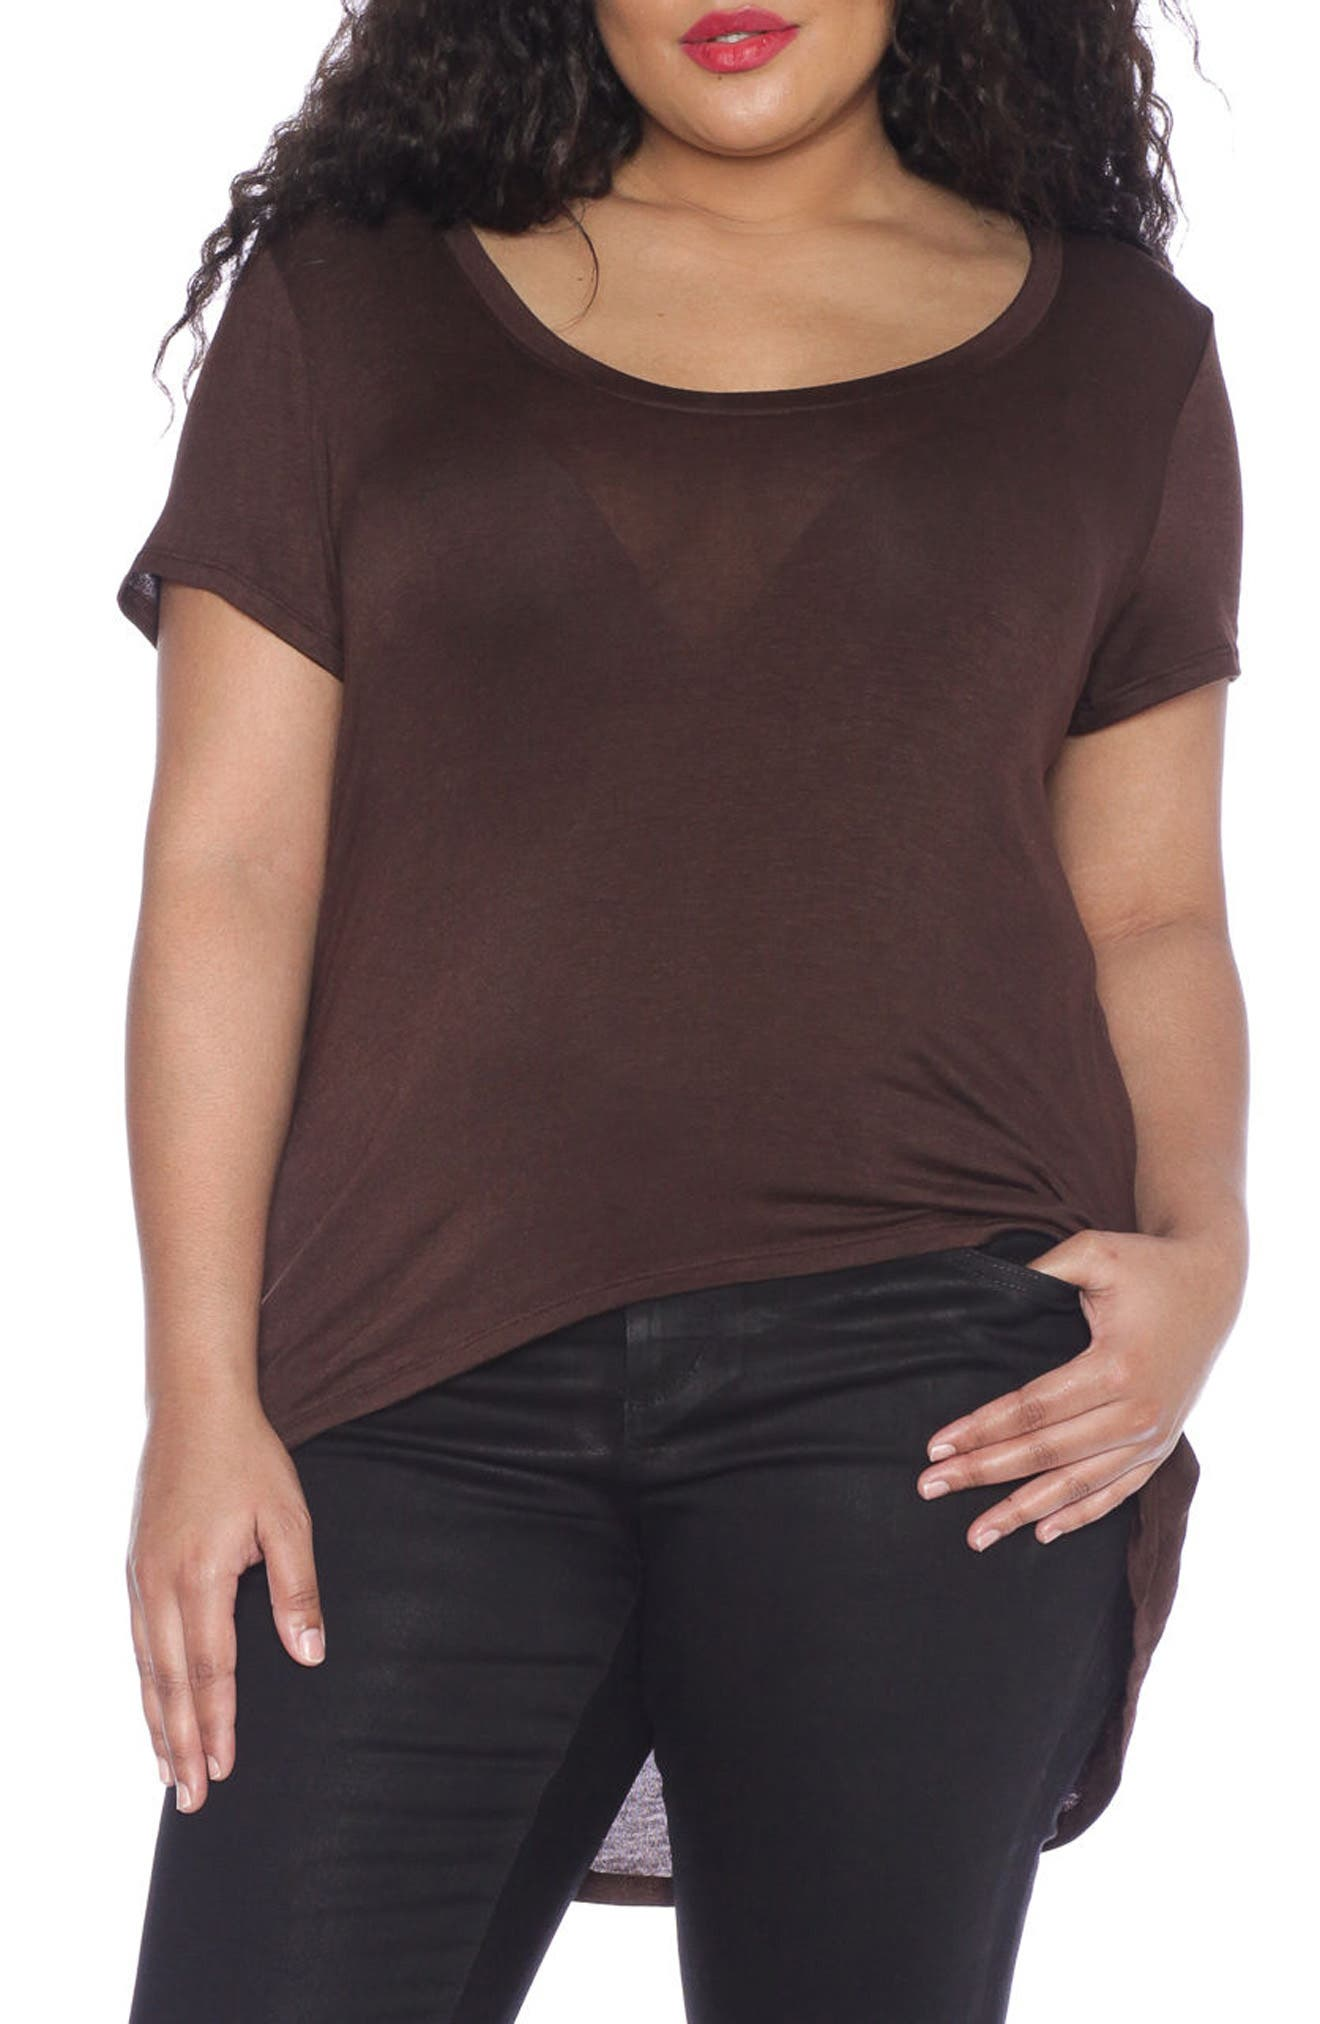 Main Image - SLINK Jeans High/Low Scoop Neck Tee (Plus Size)